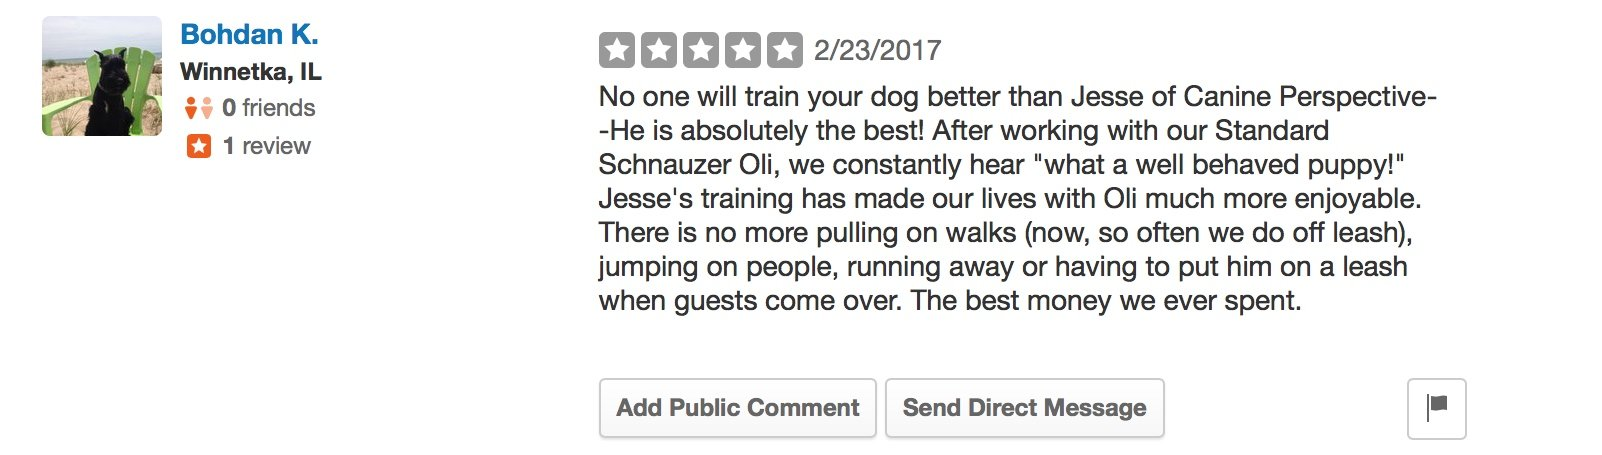 """Canine Perspective Yelp review """"No one will train your dog better than Jesse of Canine Perspective--He is absolutely the best! After working with our Standard Schnauzer Oli, we constantly hear """"what a well behaved puppy!"""" Jesse's training has made our lives with Oli much more enjoyable. There is no more pulling on walks (now, so often we do off leash), jumping on people, running away or having to put him on a leash when guests come over. The best money we ever spent."""""""